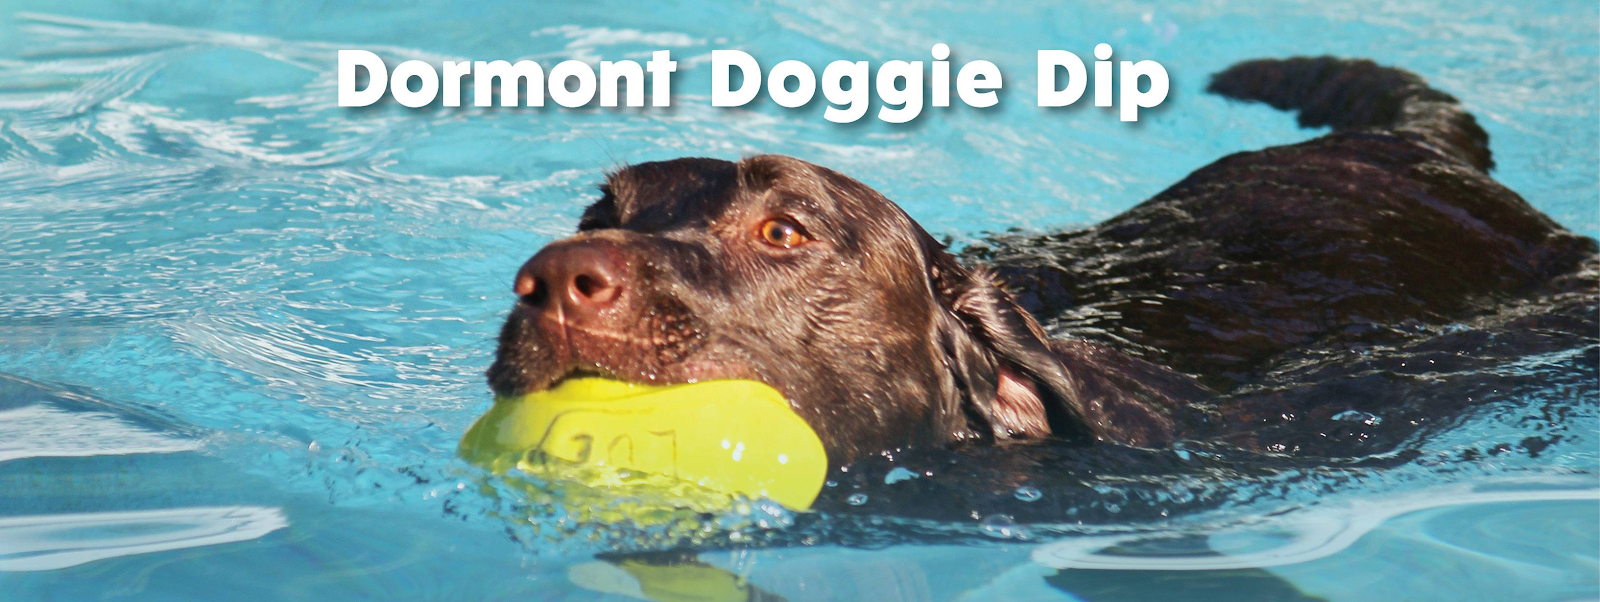 a brown dog with a yellow toy in its mouth cools off in the water at the dormant doggie dip